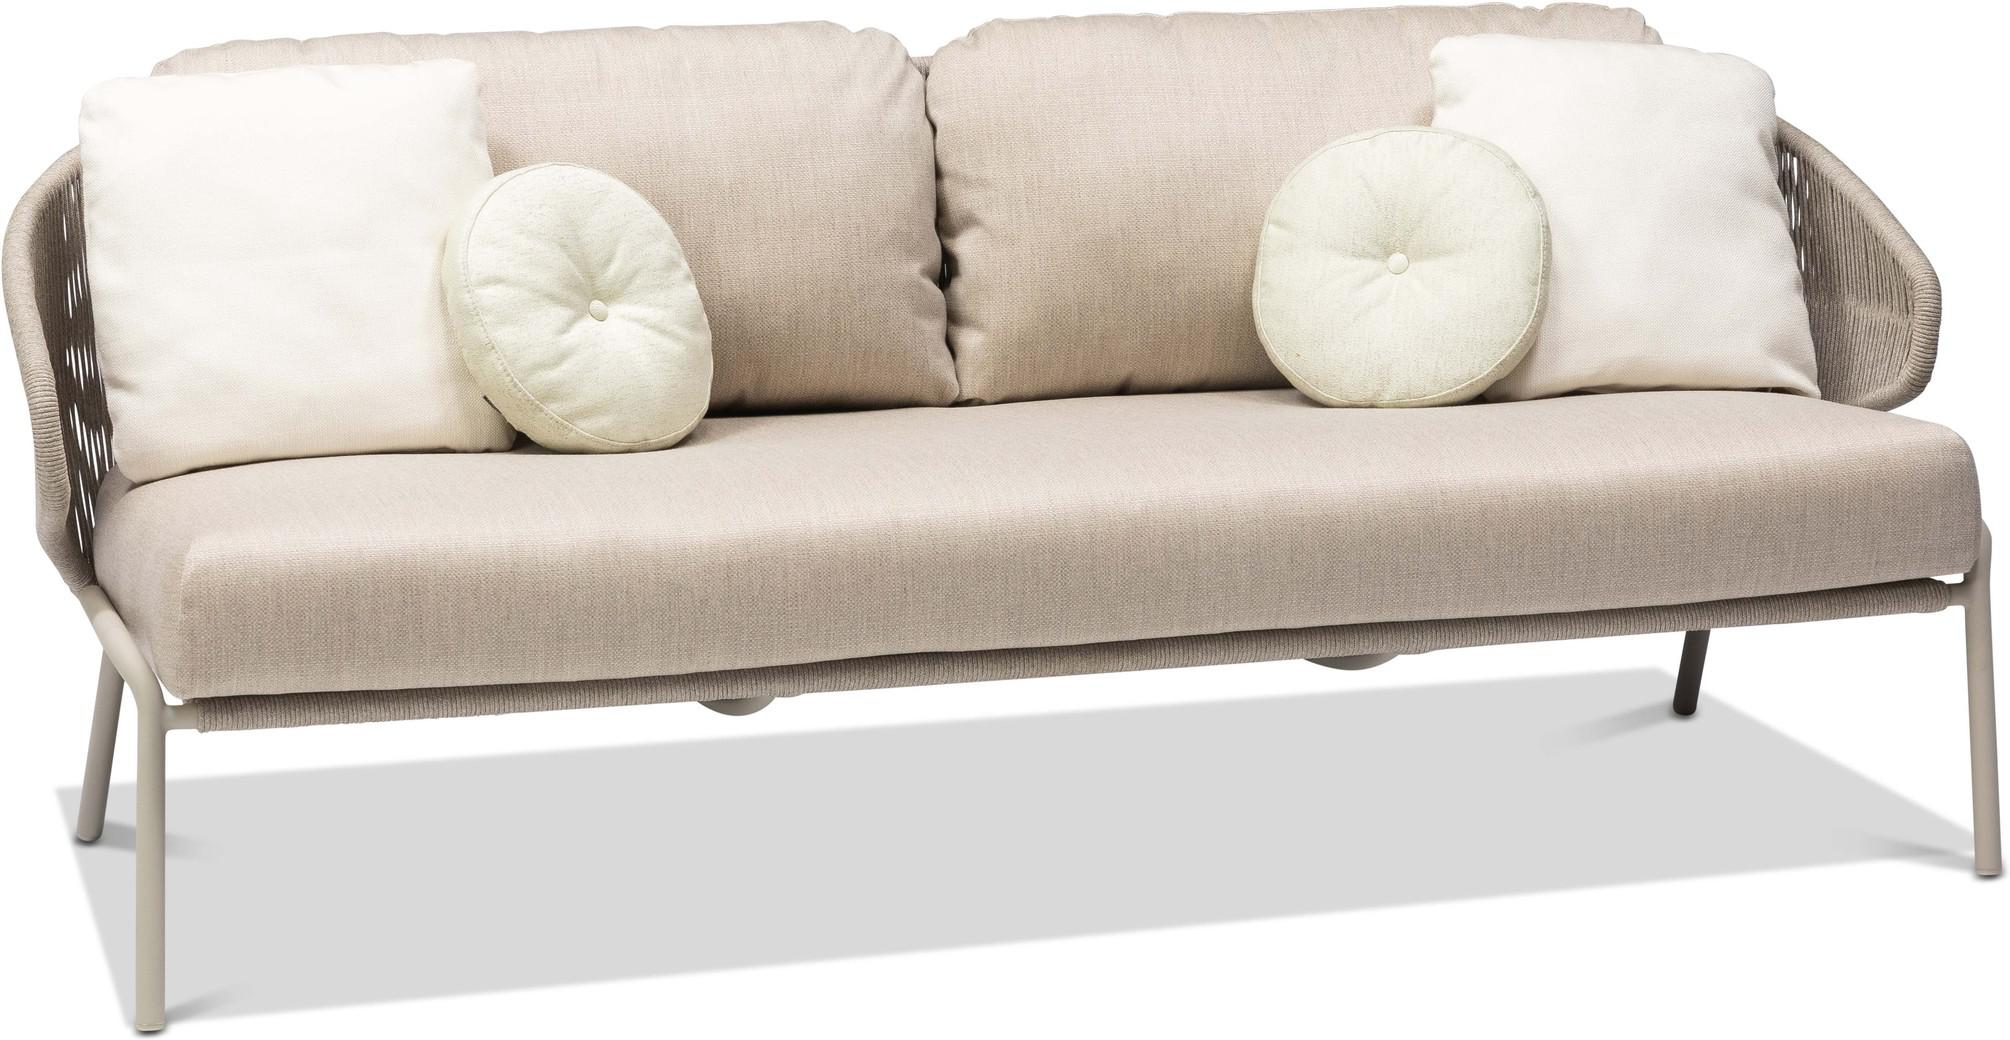 Radius 2,5 seater - Sofa fixed - flint - pepper